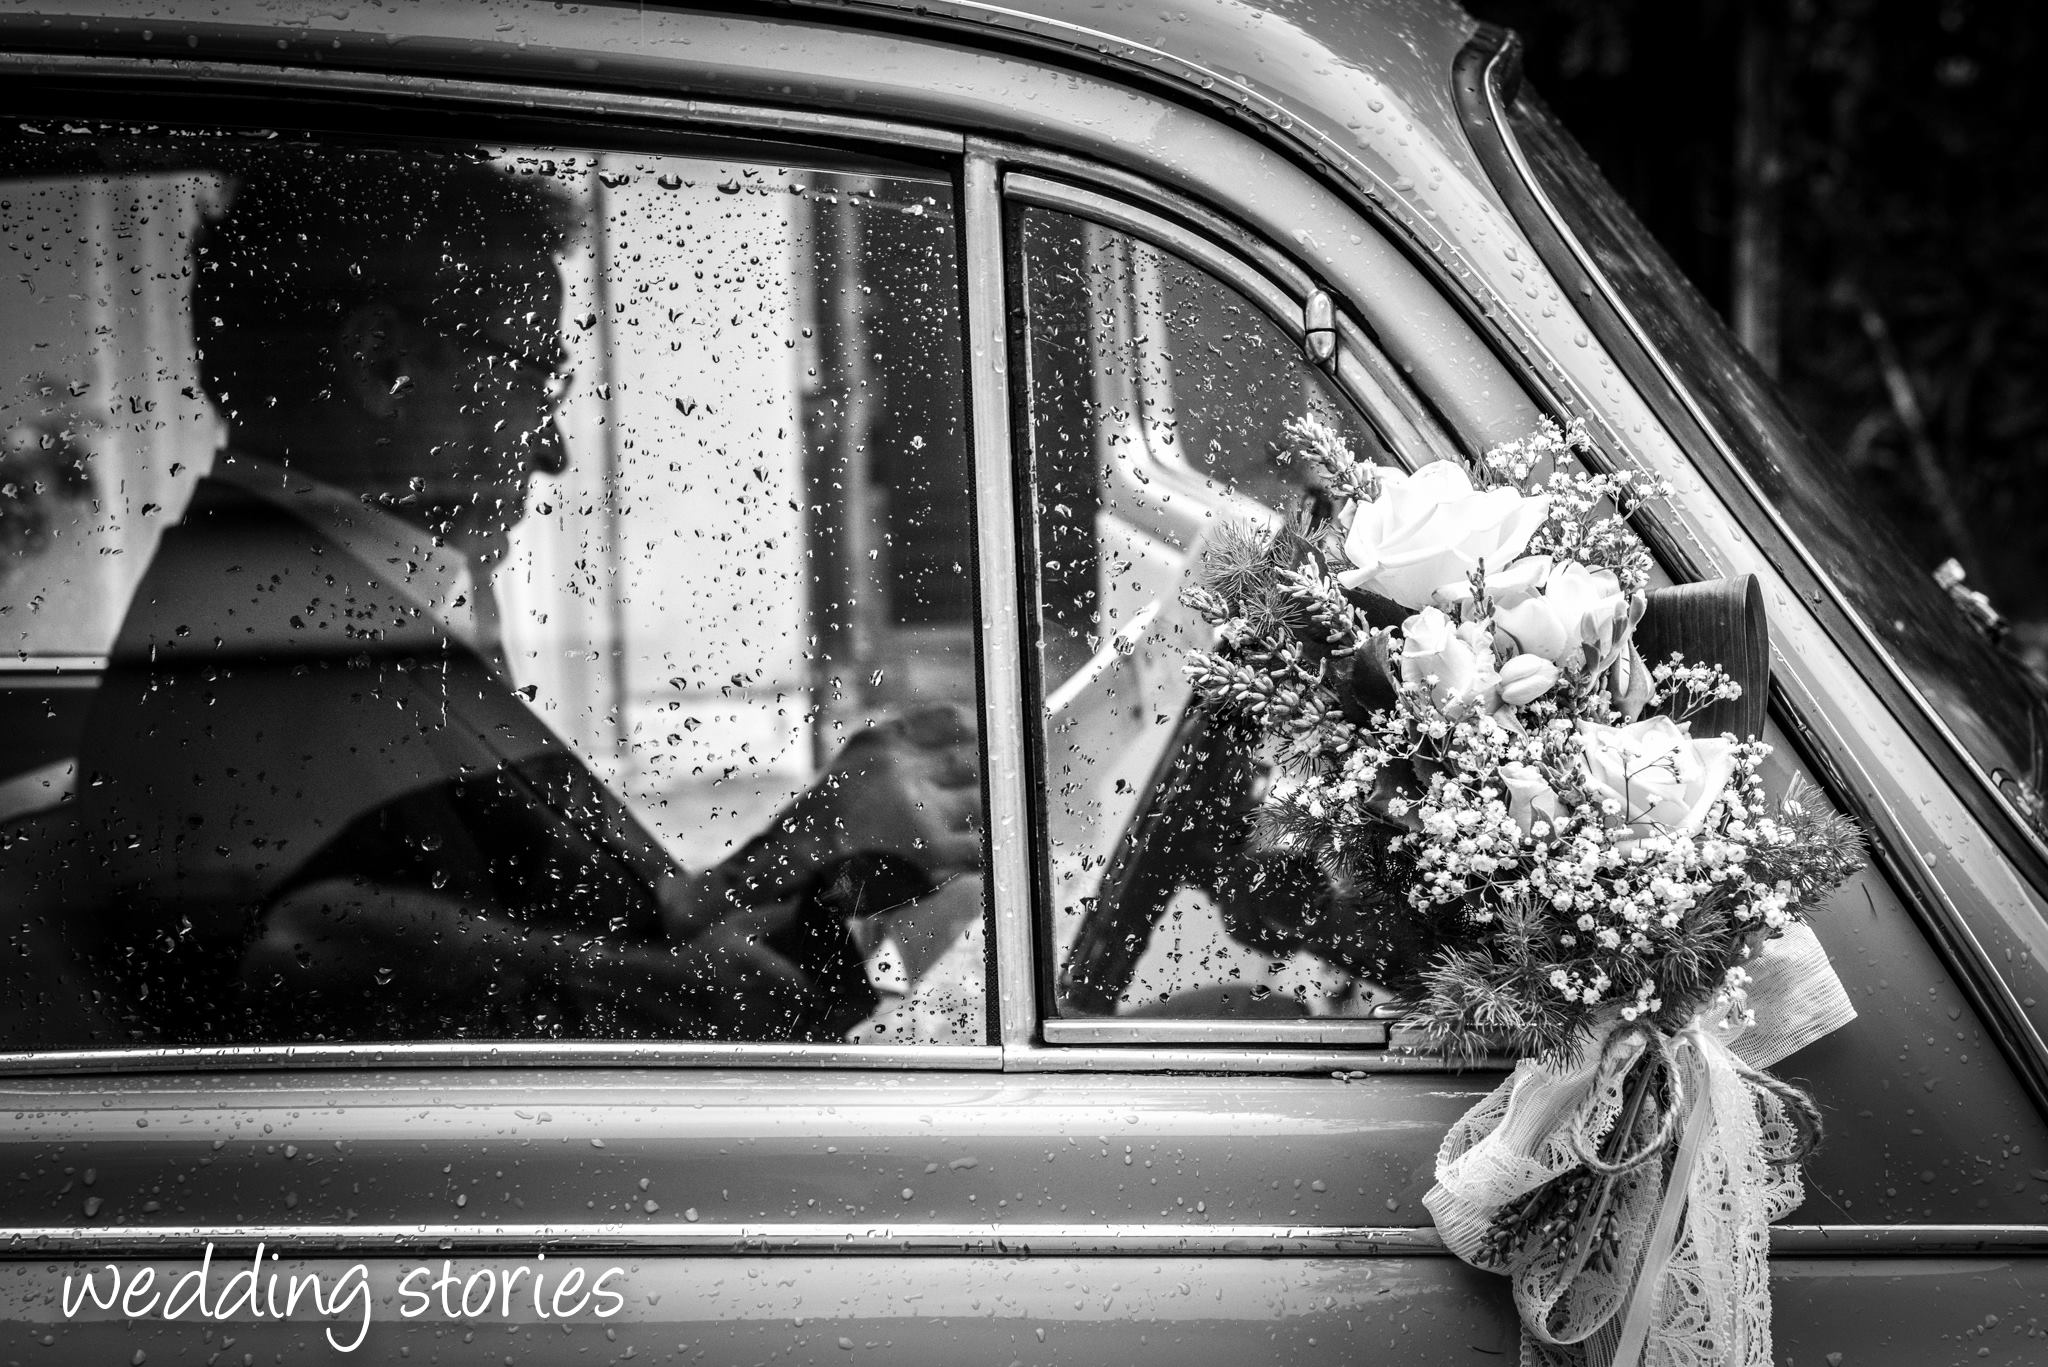 http://lnx.mirkone.it/wp-content/uploads/2015/07/mirk_ONE-fotografo-matrimonio-00903.jpg